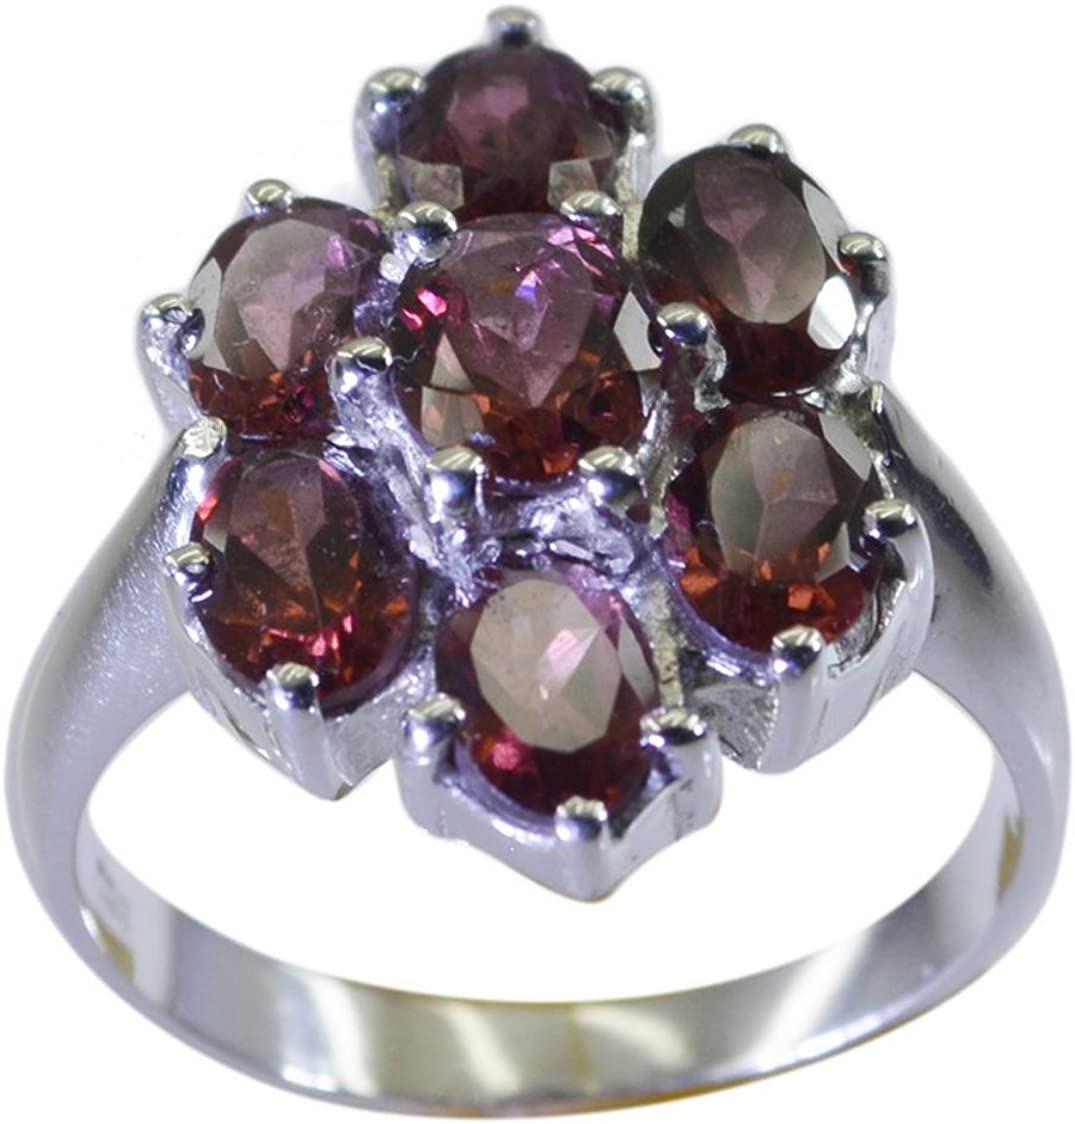 CaratYogi Natural Garnet Sterling Silver Statement Ring Oval Shape Cluster Style Size 5 6 7 8 9 10 11 12